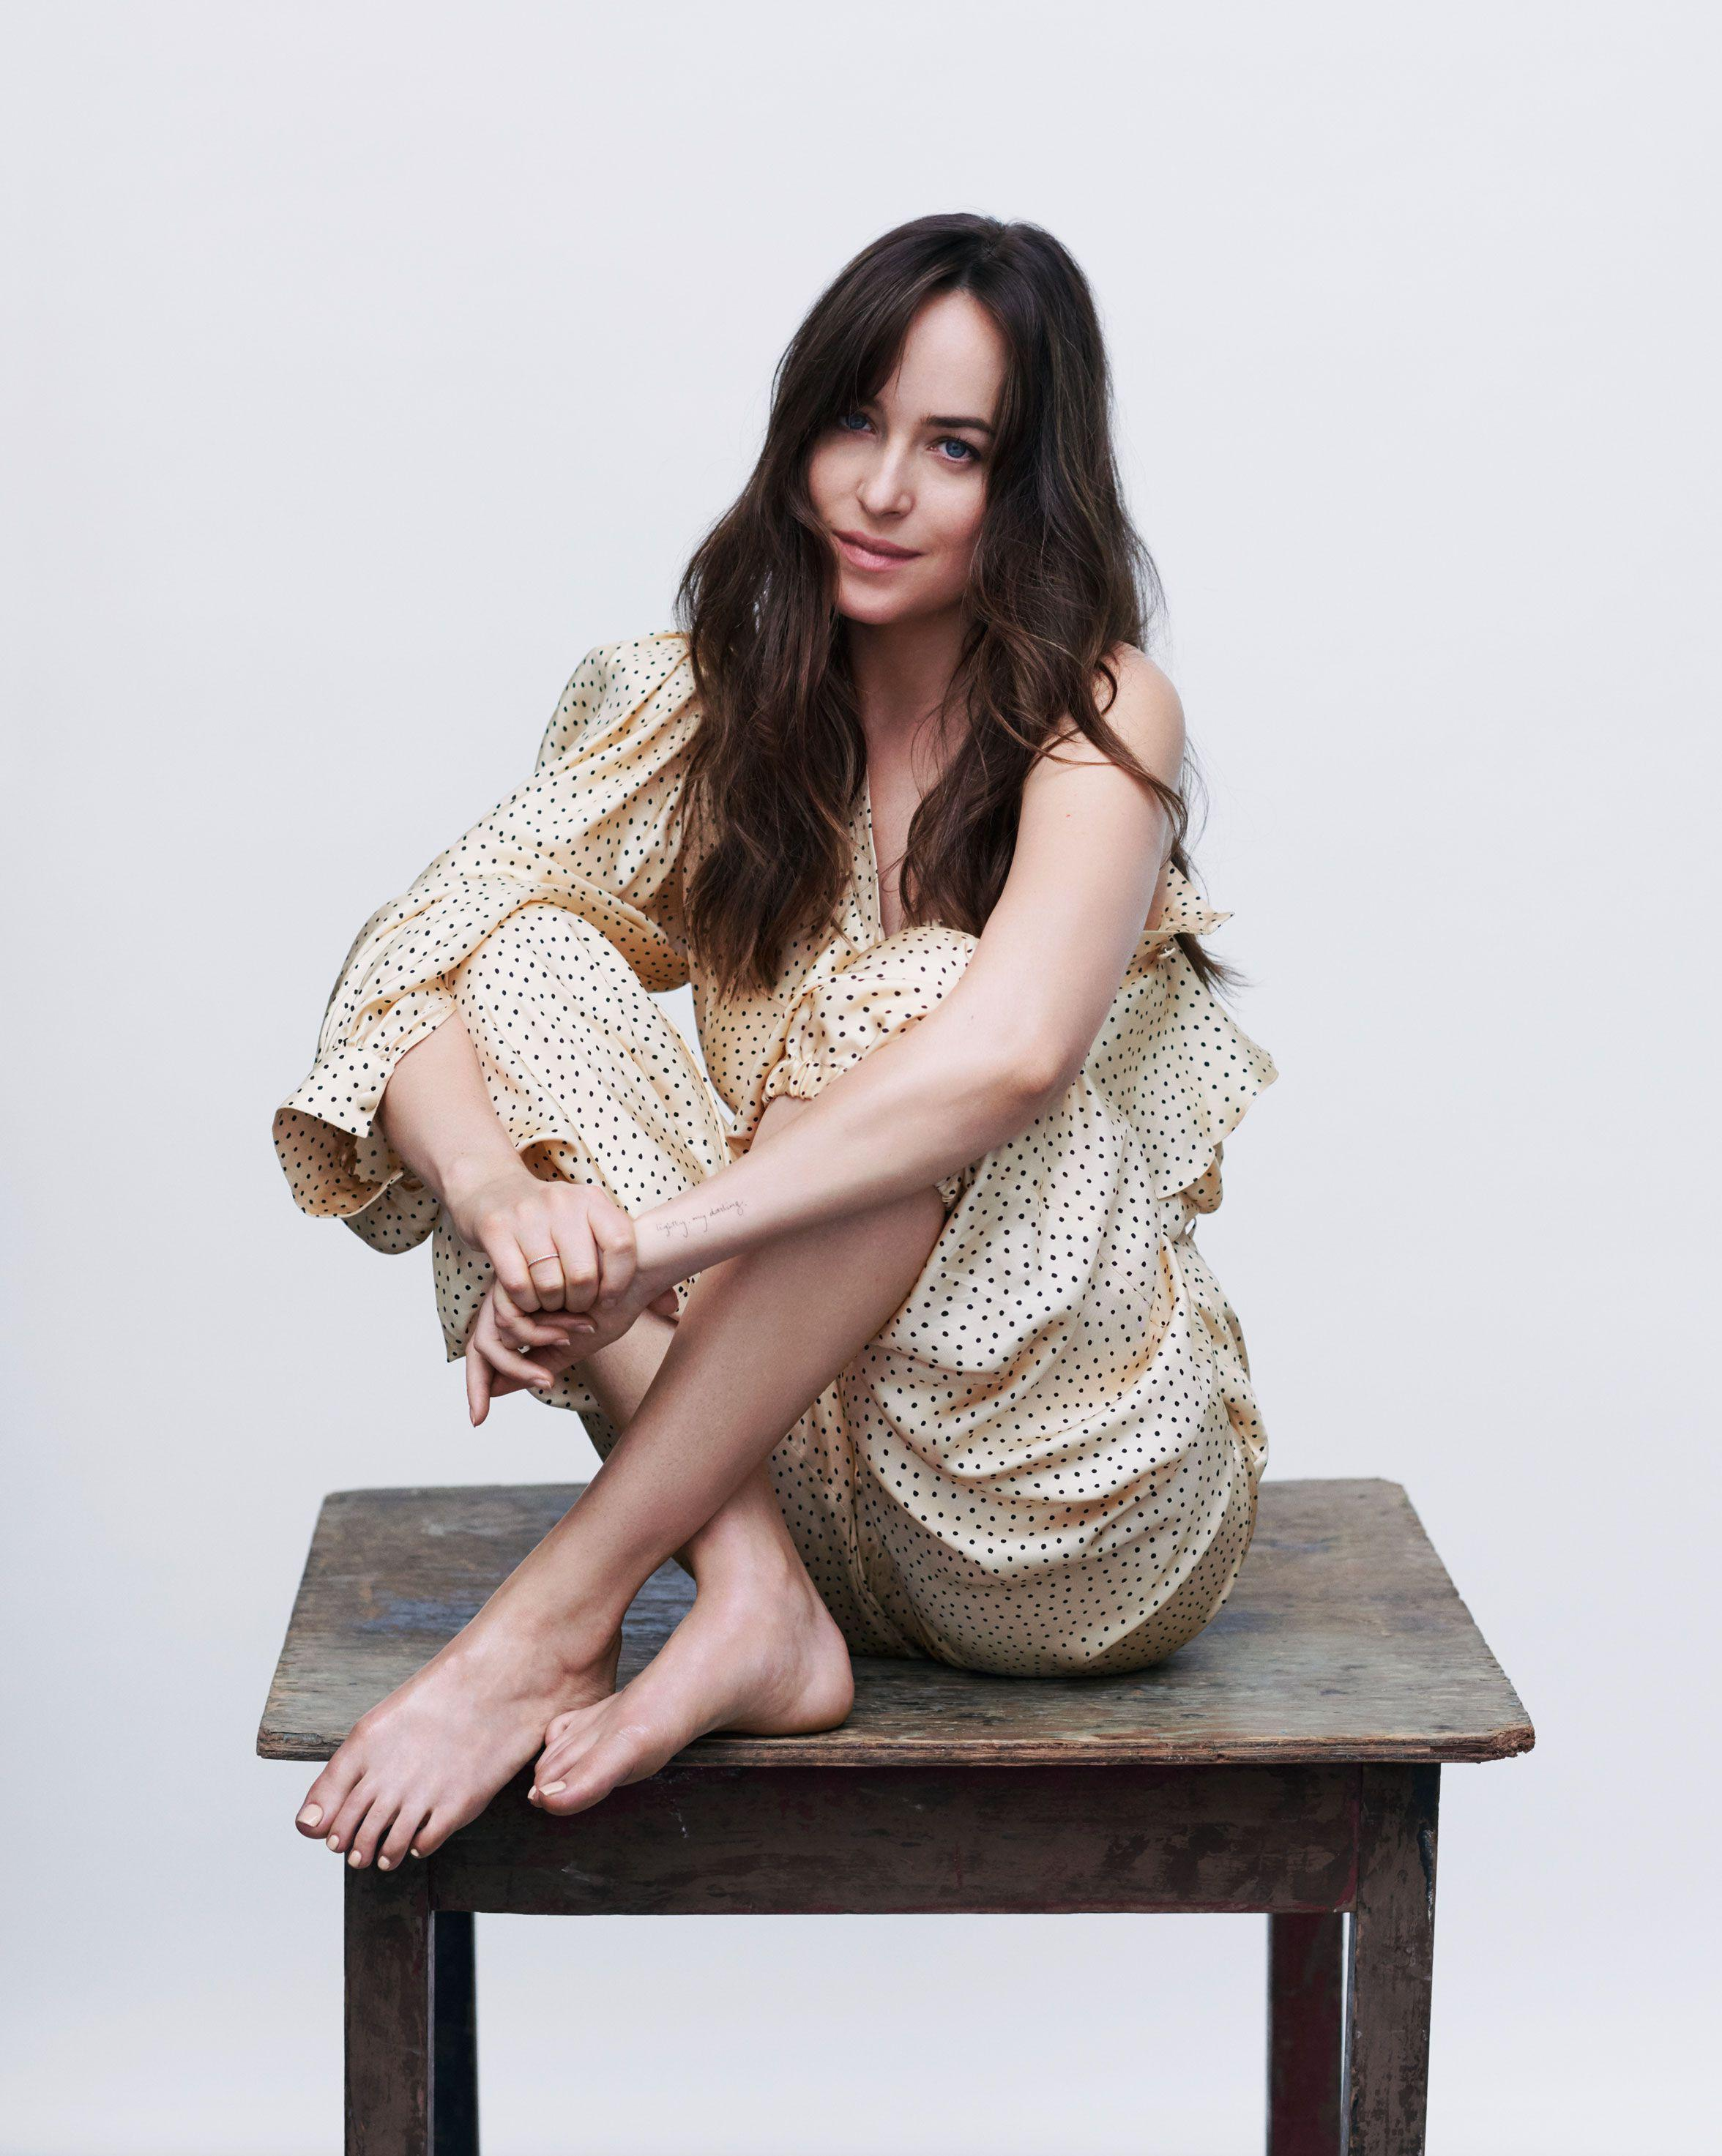 dakota johnson bare feet pictures